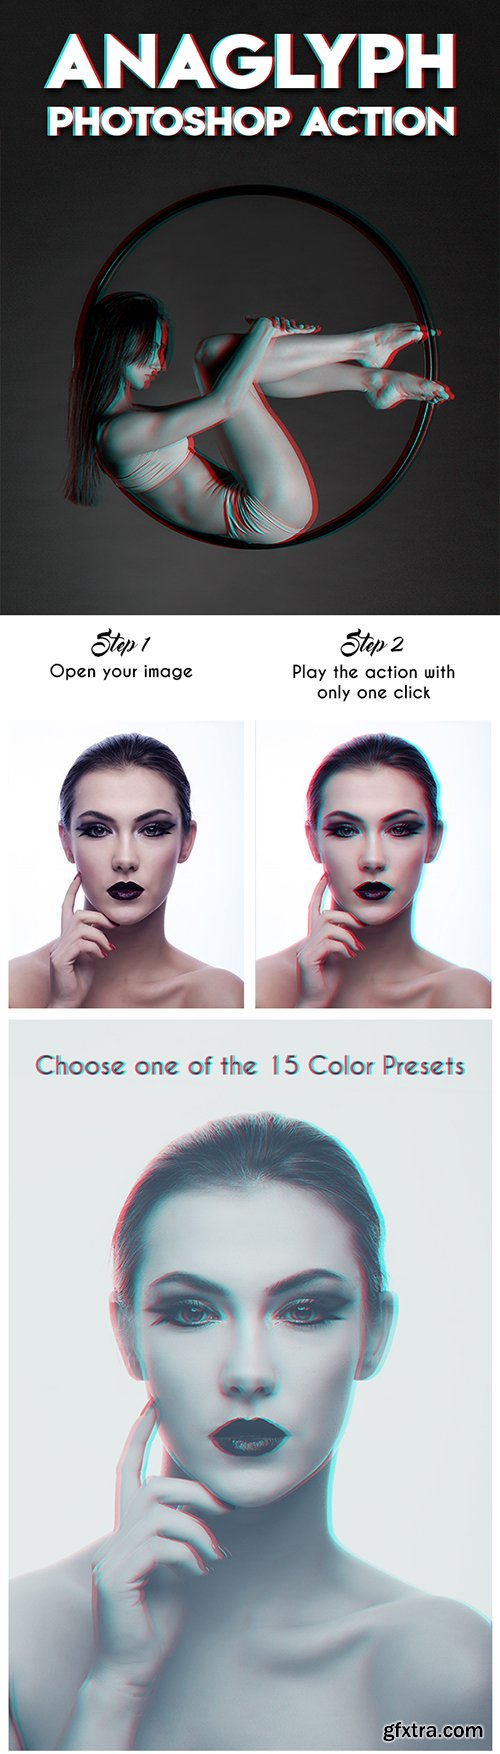 Graphicriver - Anaglyph Photoshop Action 20035998